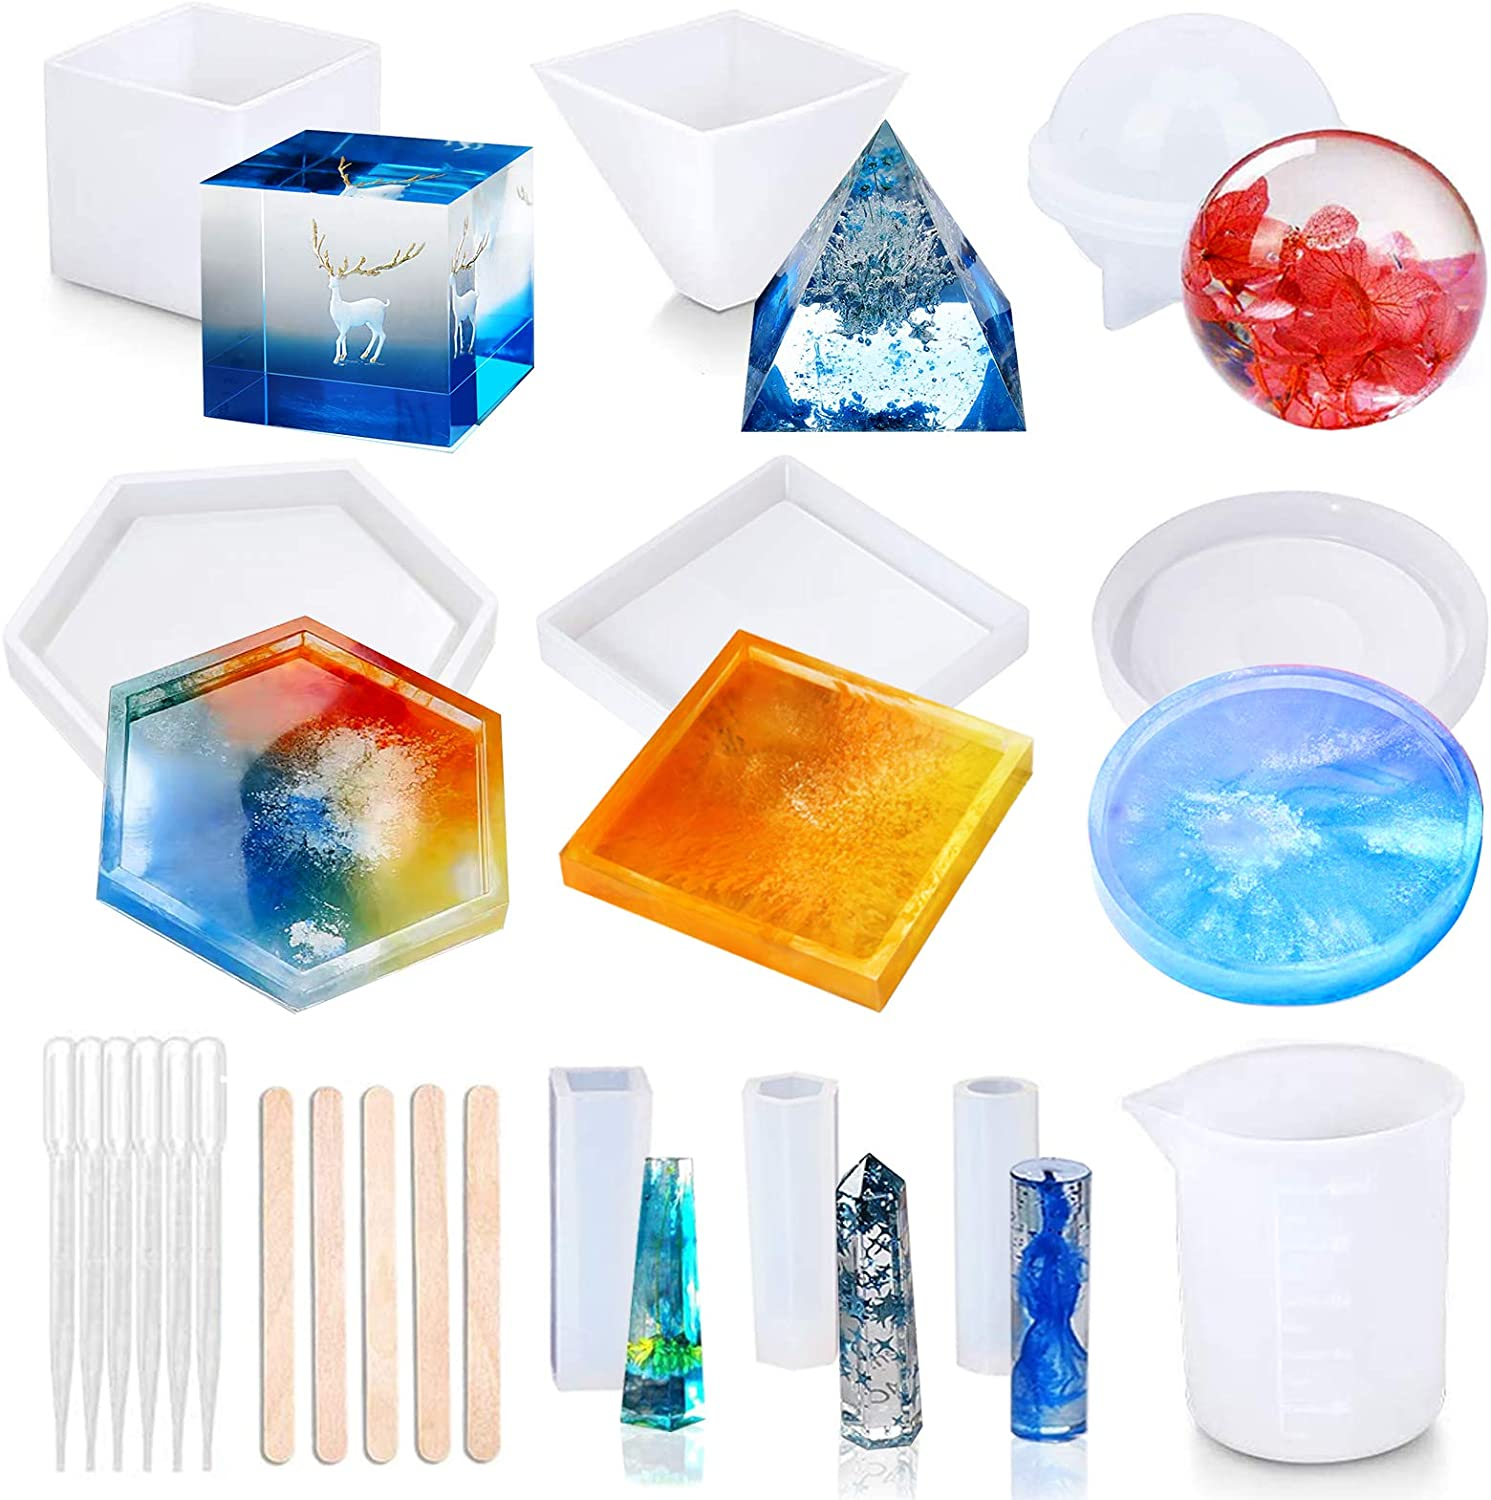 Silicone Resin Molds 20Pcs Shipping included Epoxy 2021 model for Resi